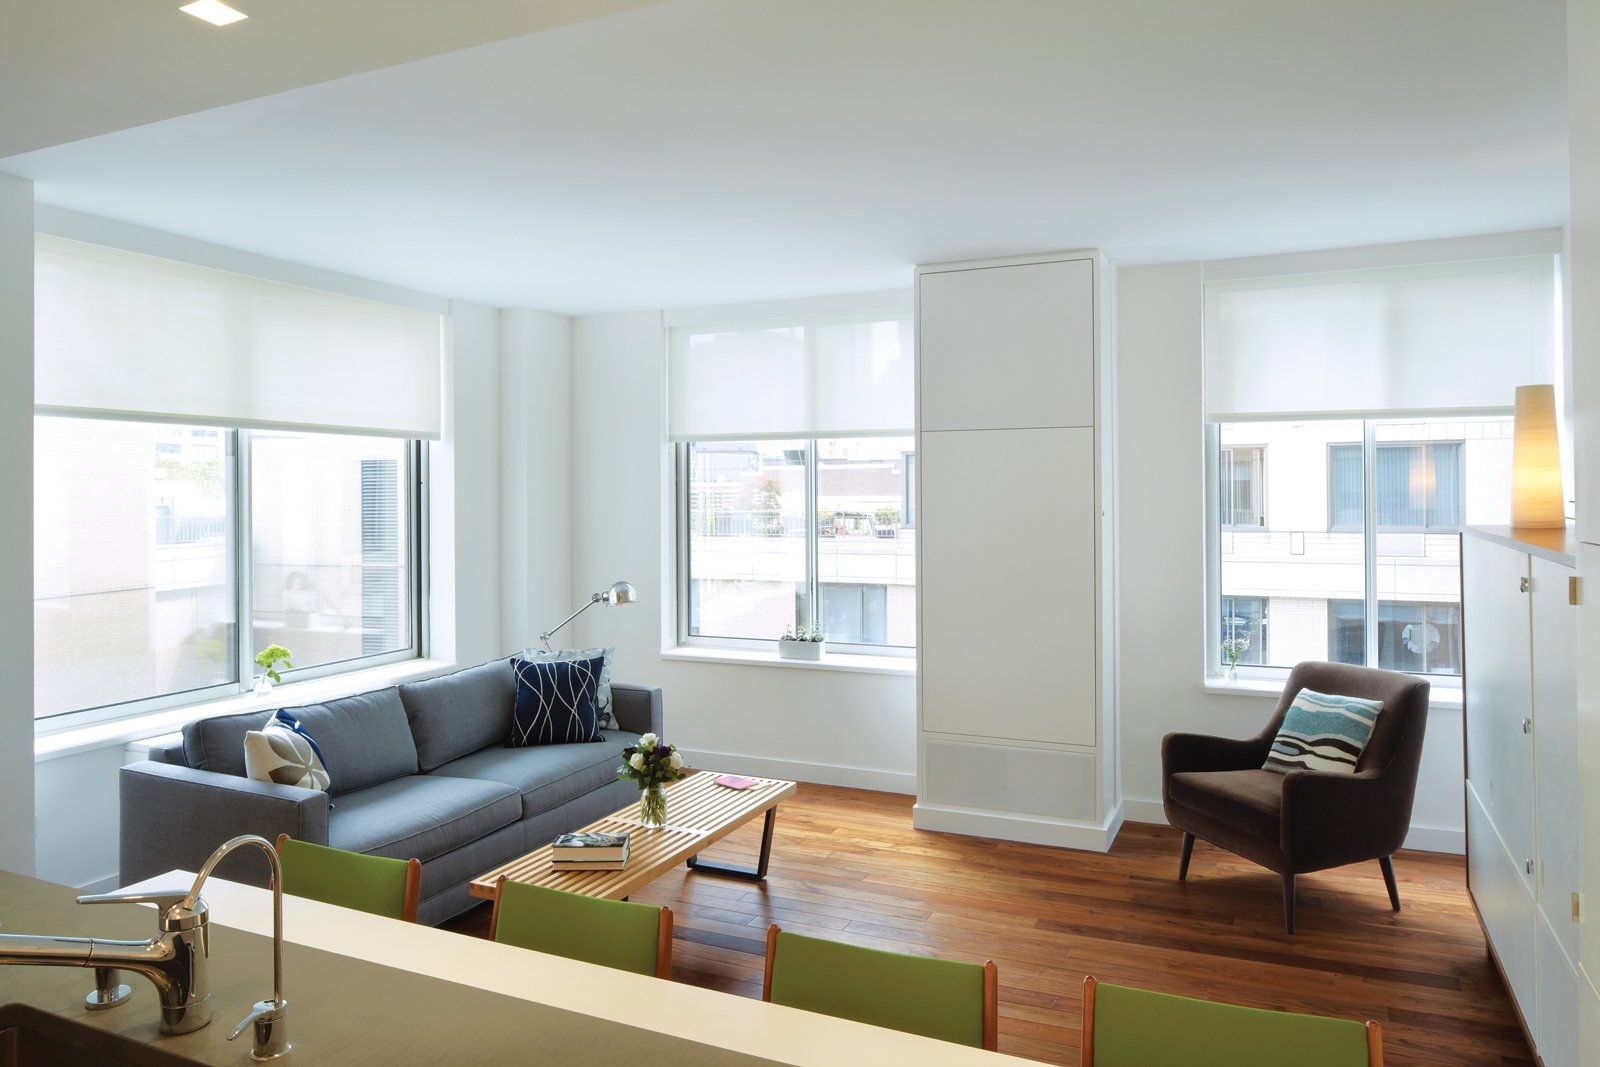 Like a Murphy bed, the dining table tucks into the wall when not in use. Tagged: Living Room, Medium Hardwood Floor, Sofa, and Chair.  Tiny Apartments in New York City by Allie Weiss from Hide and Eat